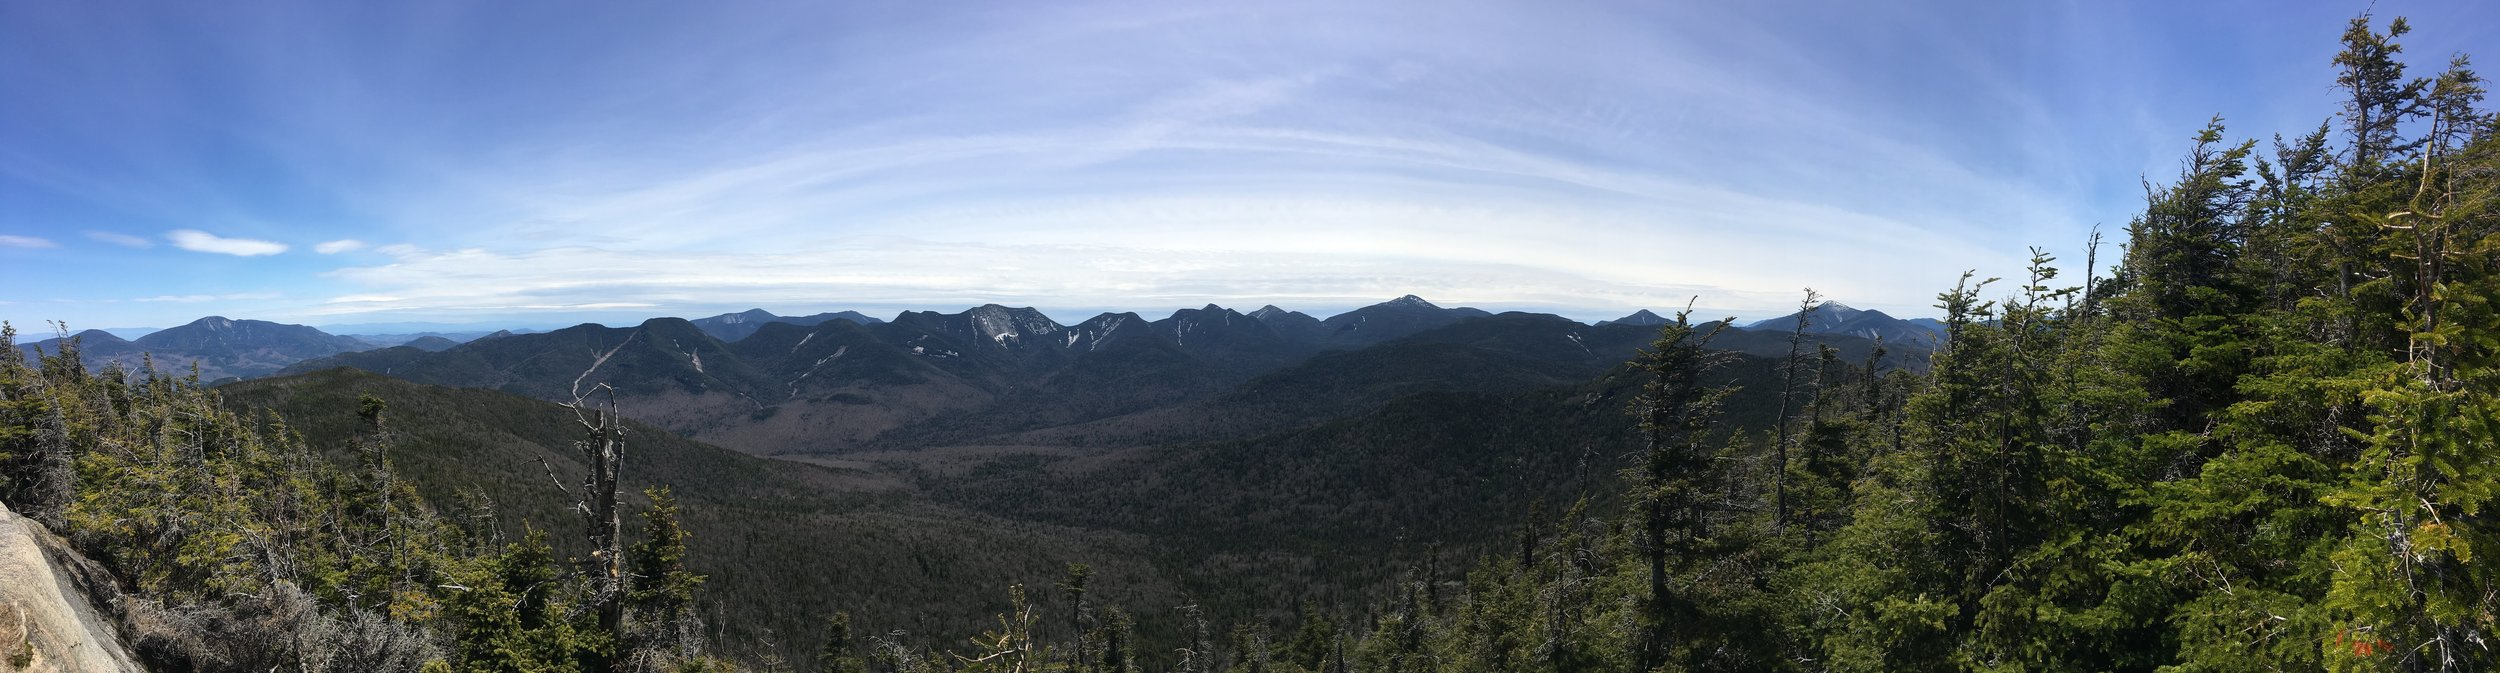 Pano from the Summit. See in the distance Gothics, Haystack, Marcy, Algonquin, several other 46ers.